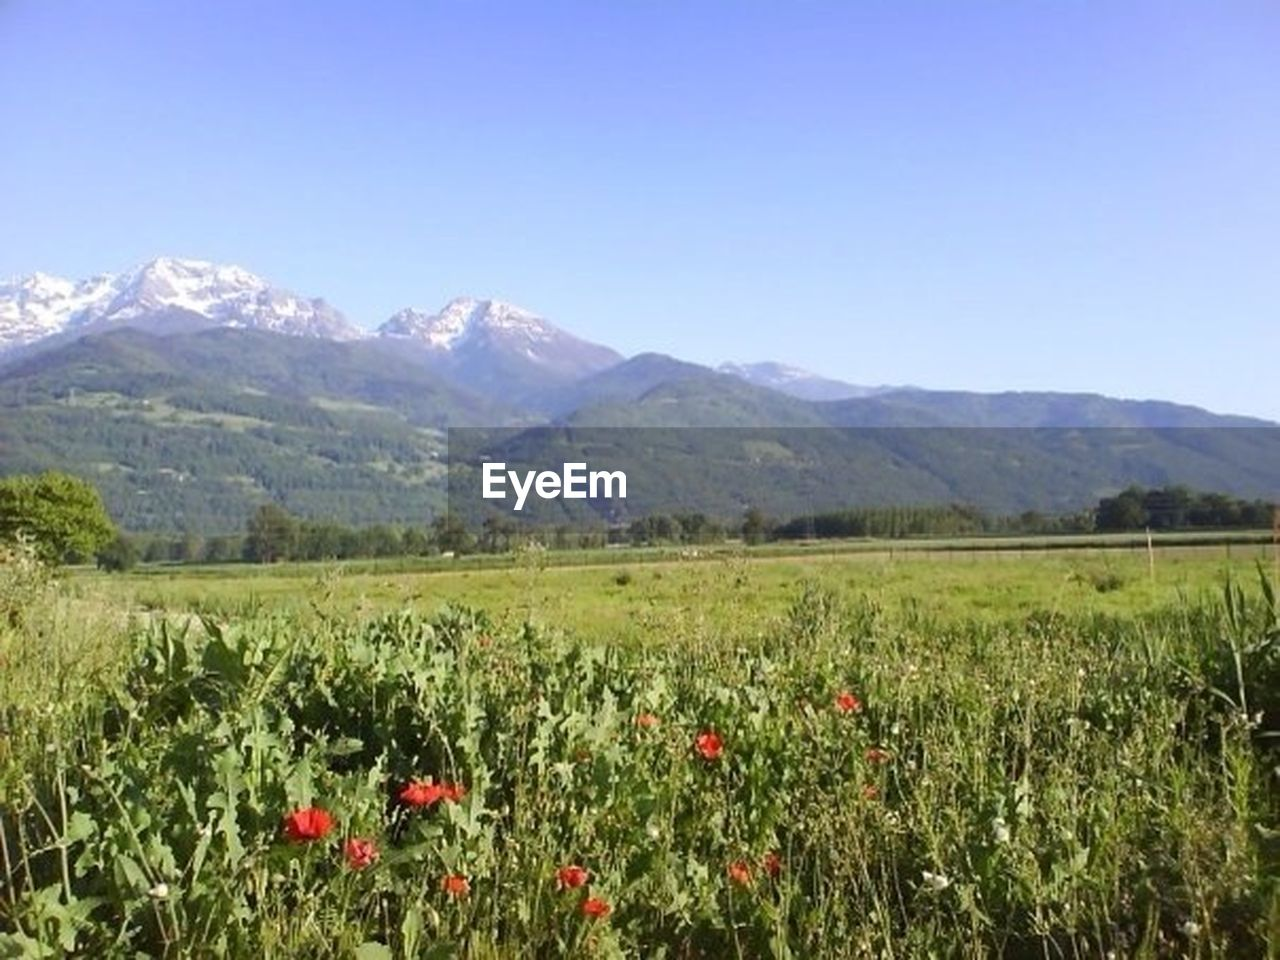 mountain, nature, landscape, scenics, mountain range, outdoors, flower, field, agriculture, beauty in nature, summer, rural scene, plant, clear sky, day, sky, no people, freshness